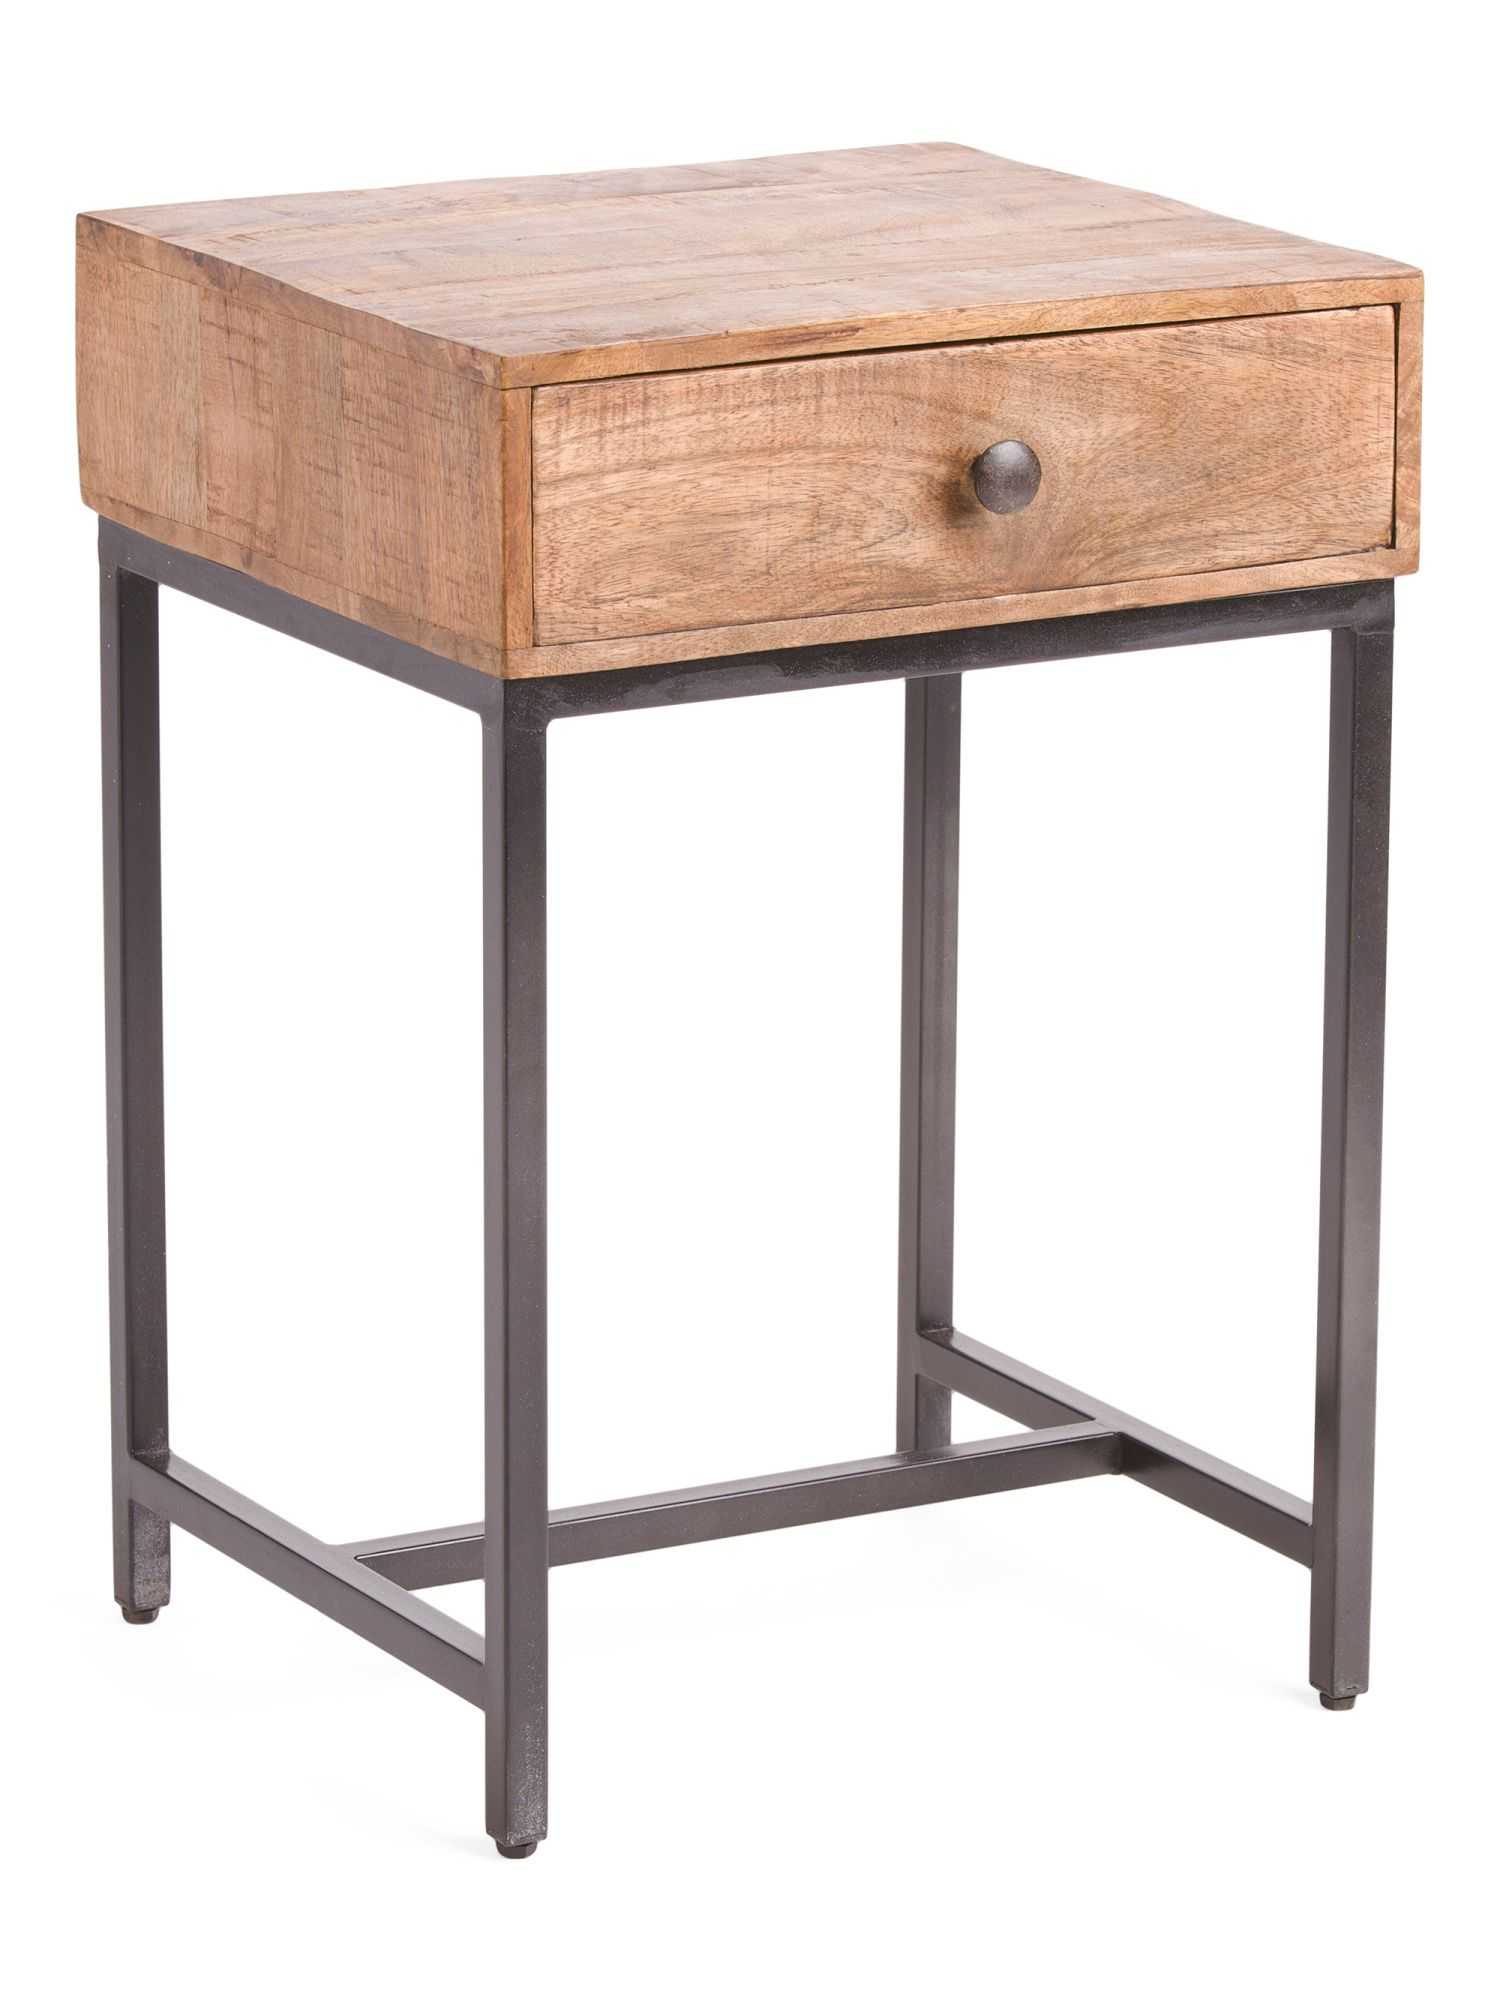 Mango Wood Hermione End Table - Accent Furniture - T.J.Maxx